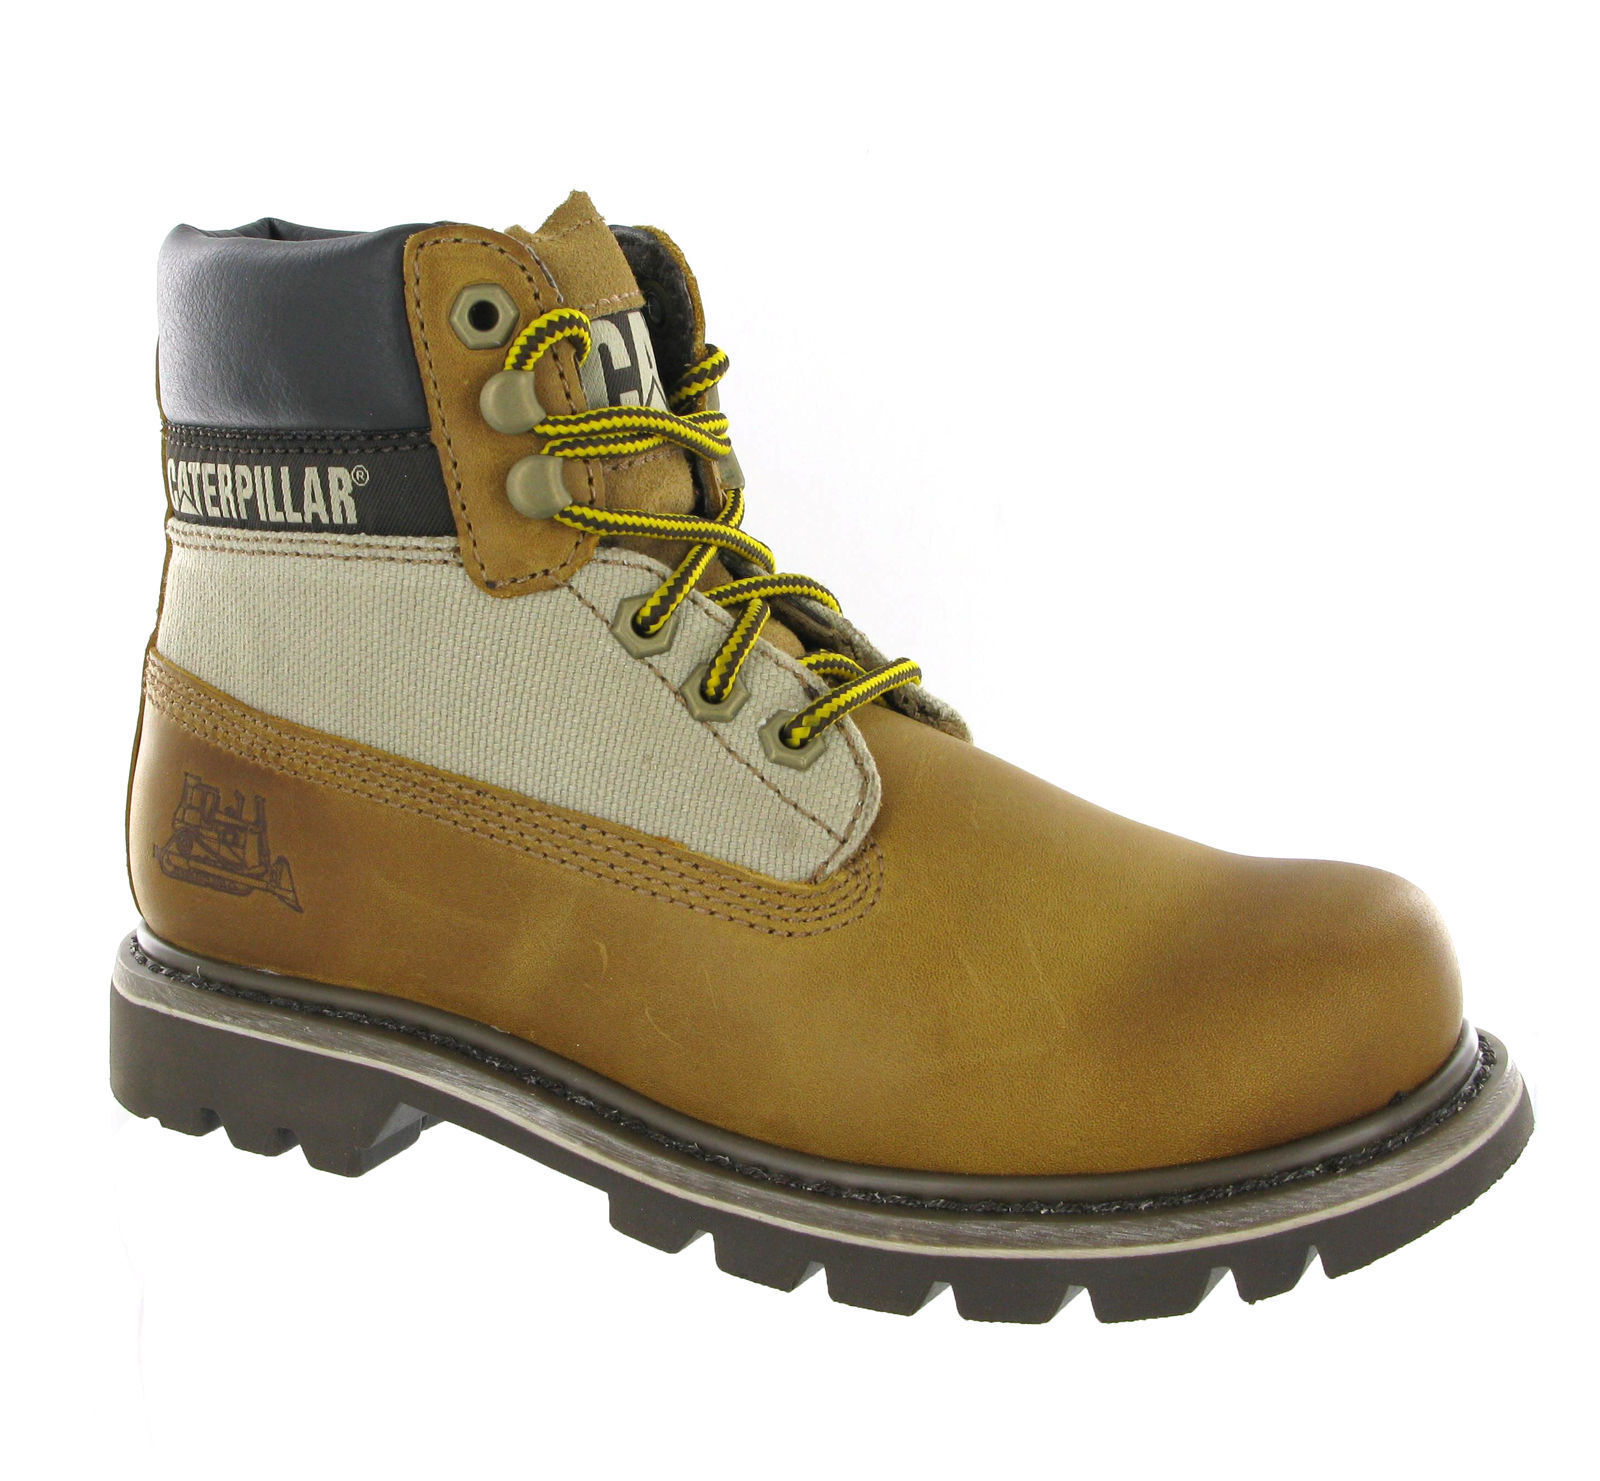 7a3d46a7 Cat Caterpillar Colorado Beaned Cuero Tostado Botas al Tobillo Unisex UK-3